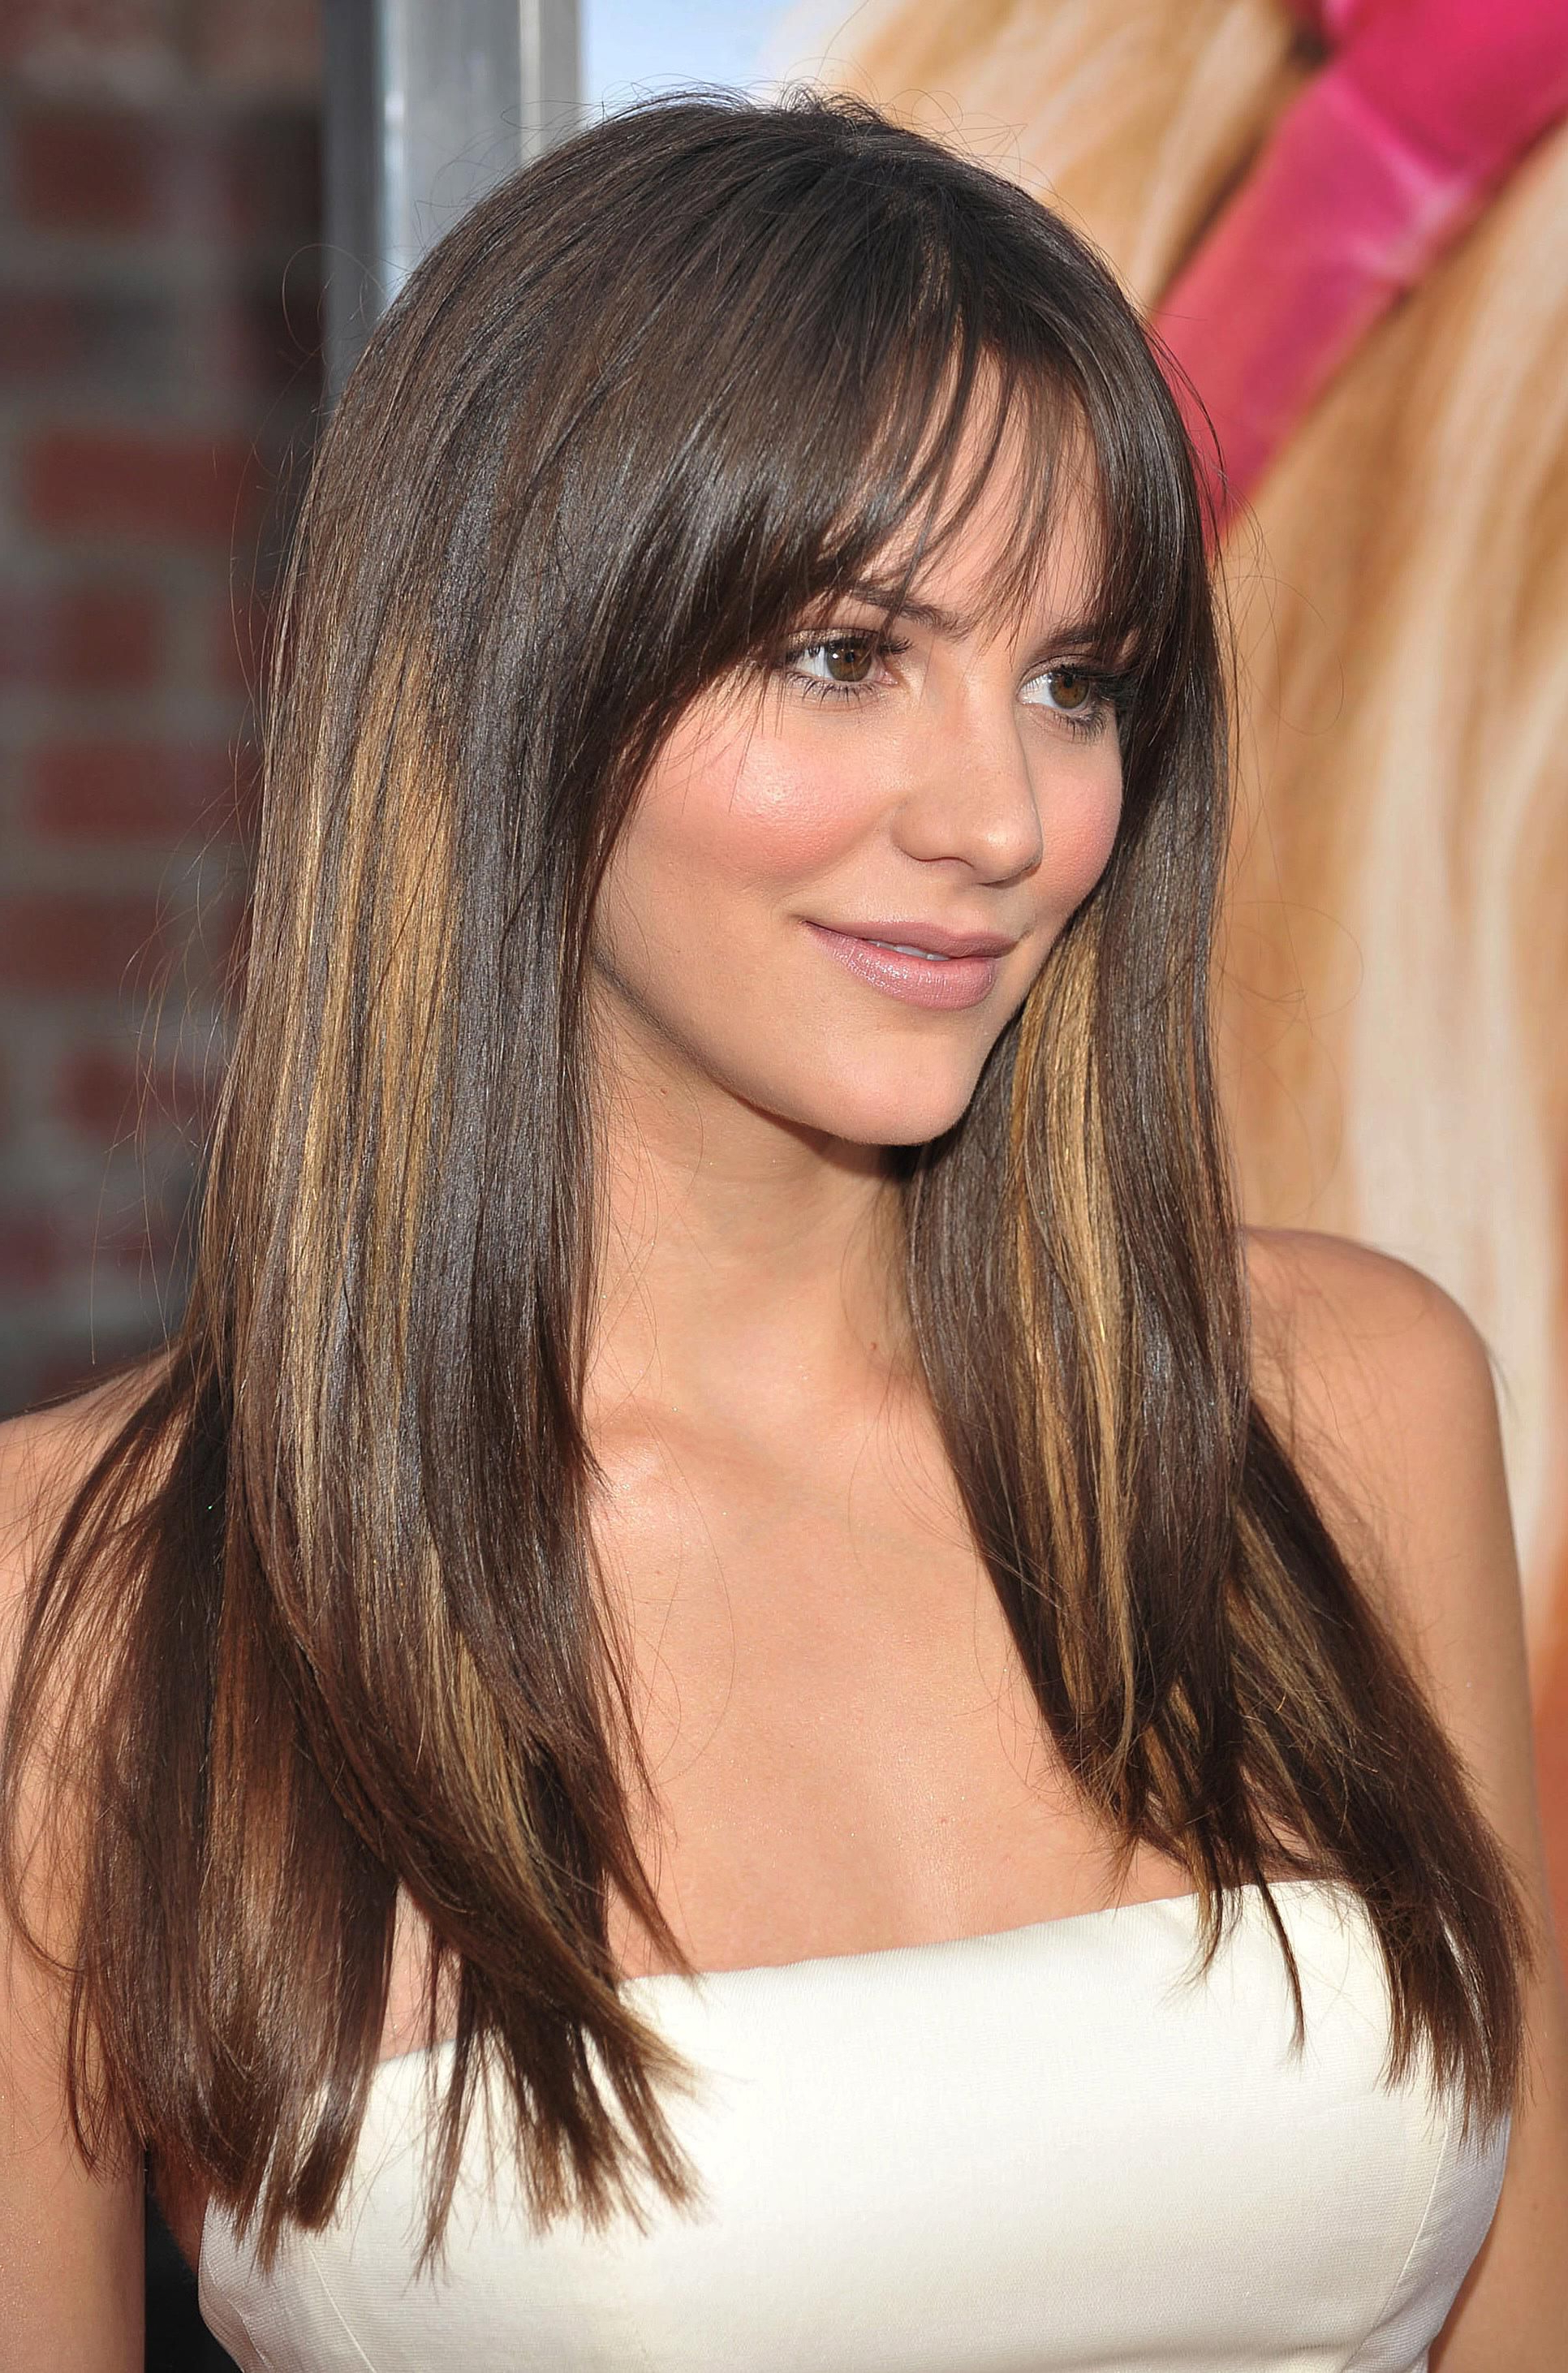 35 Flattering Hairstyles For Round Faces Within Most Recently Released Elongated Layered Haircuts For Straight Hair (Gallery 8 of 20)